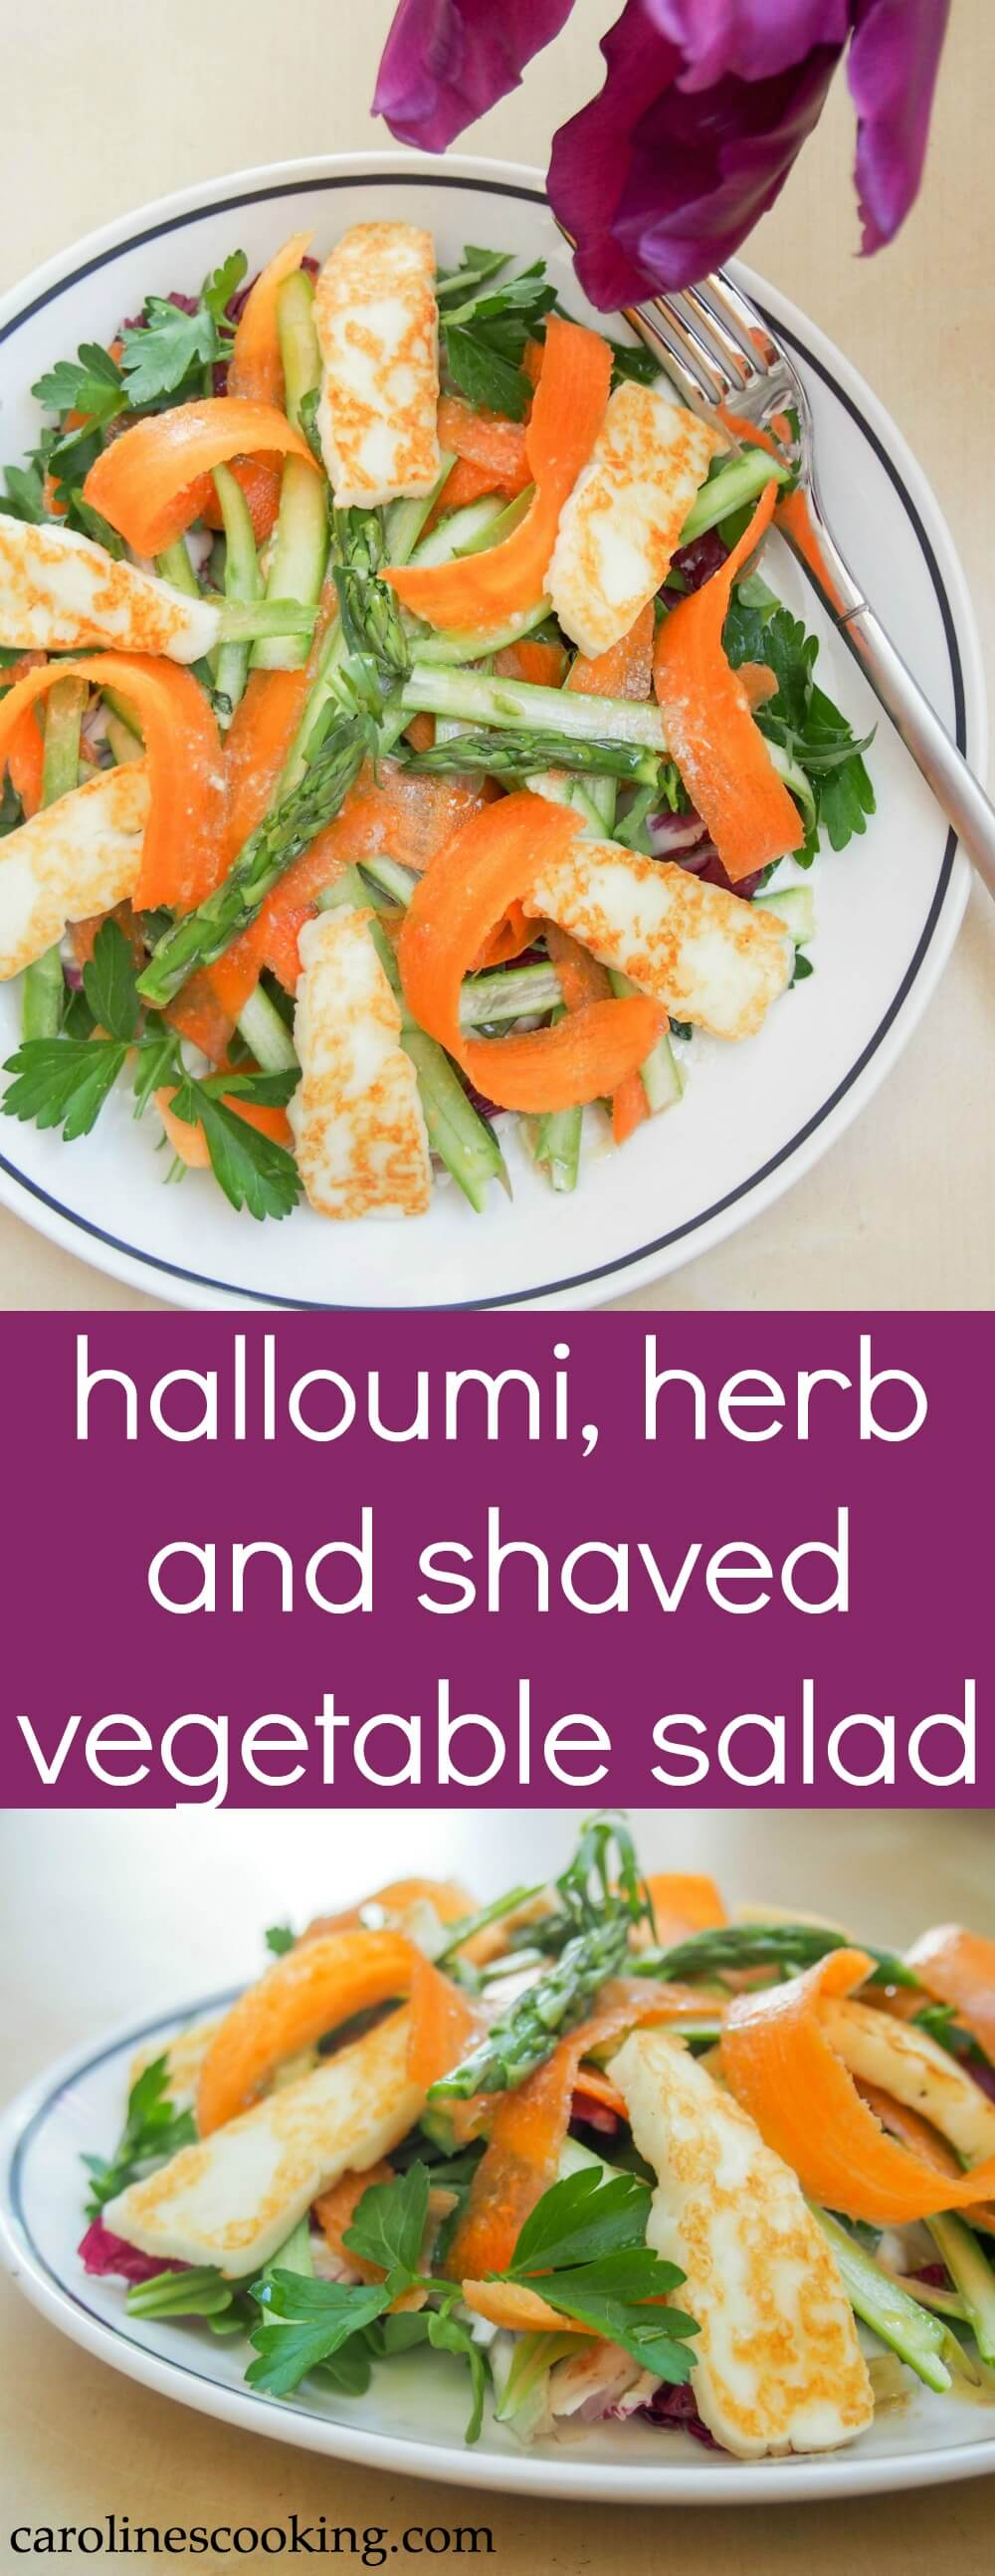 This halloumi, herb and shaved vegetable salad is quick and easy to make. Full of fresh flavors and crunch, it's healthy too. A great lunch/side. #salad #halloumi